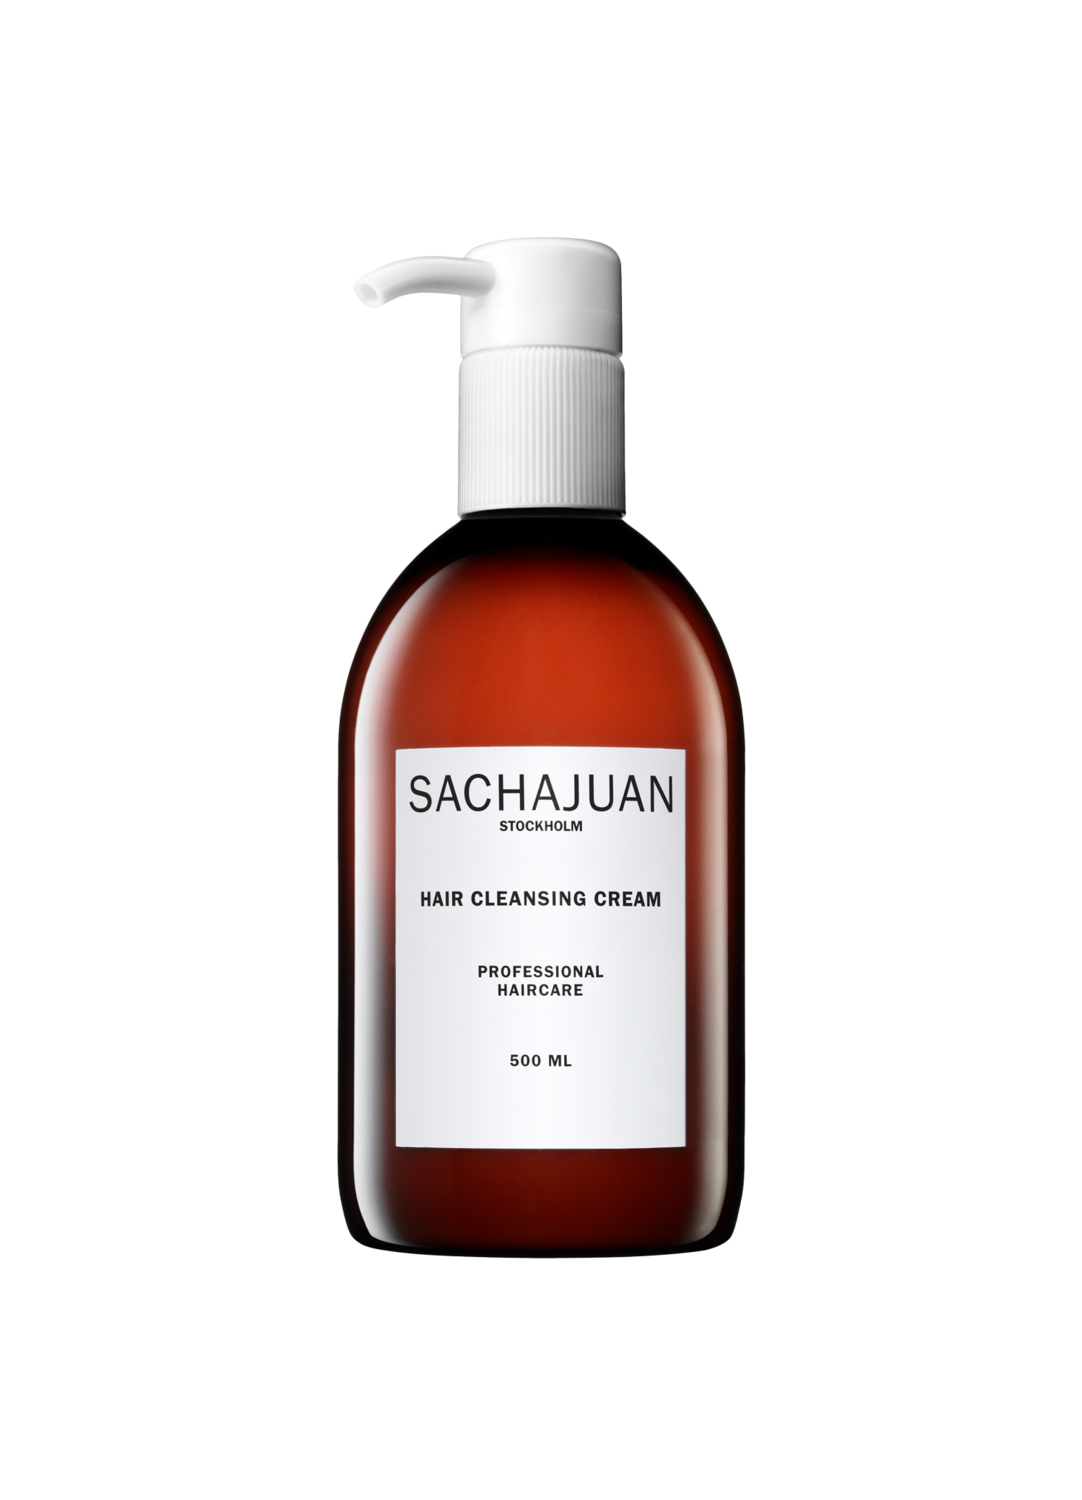 sachajuan | hair cleansing cream[product_type ]sachajuan - Kiss and Makeup